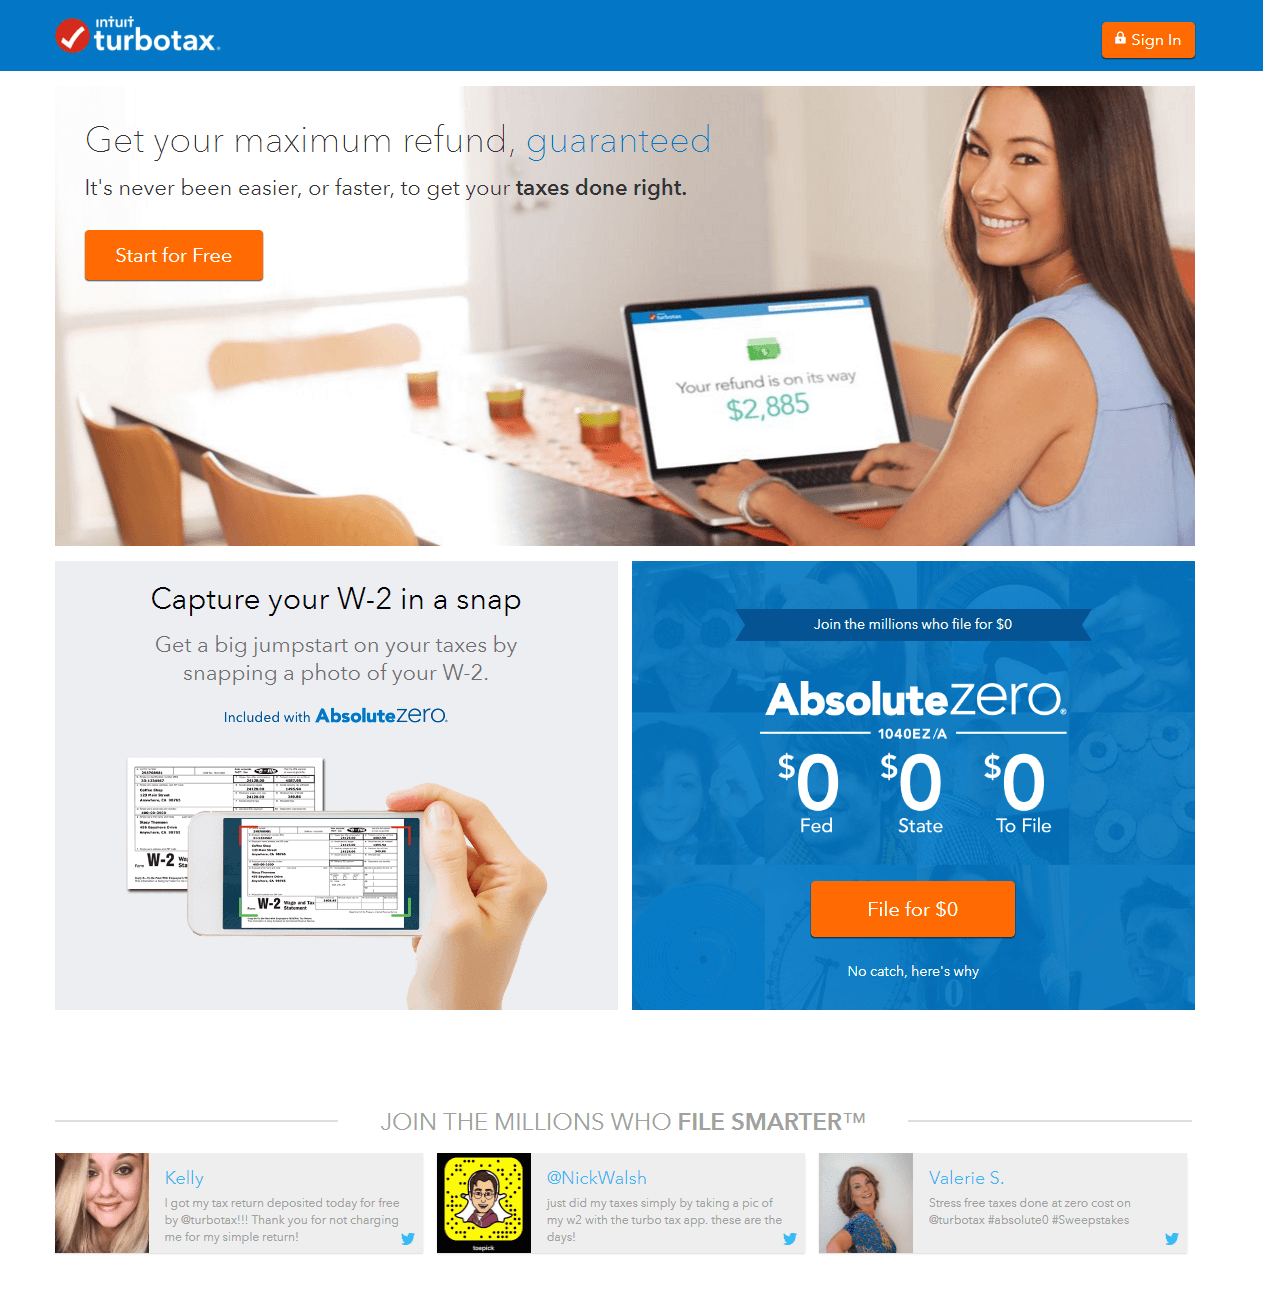 This picture shows marketers how TurboTax uses an optimized Tumblr landing page to convert visitors into customers.